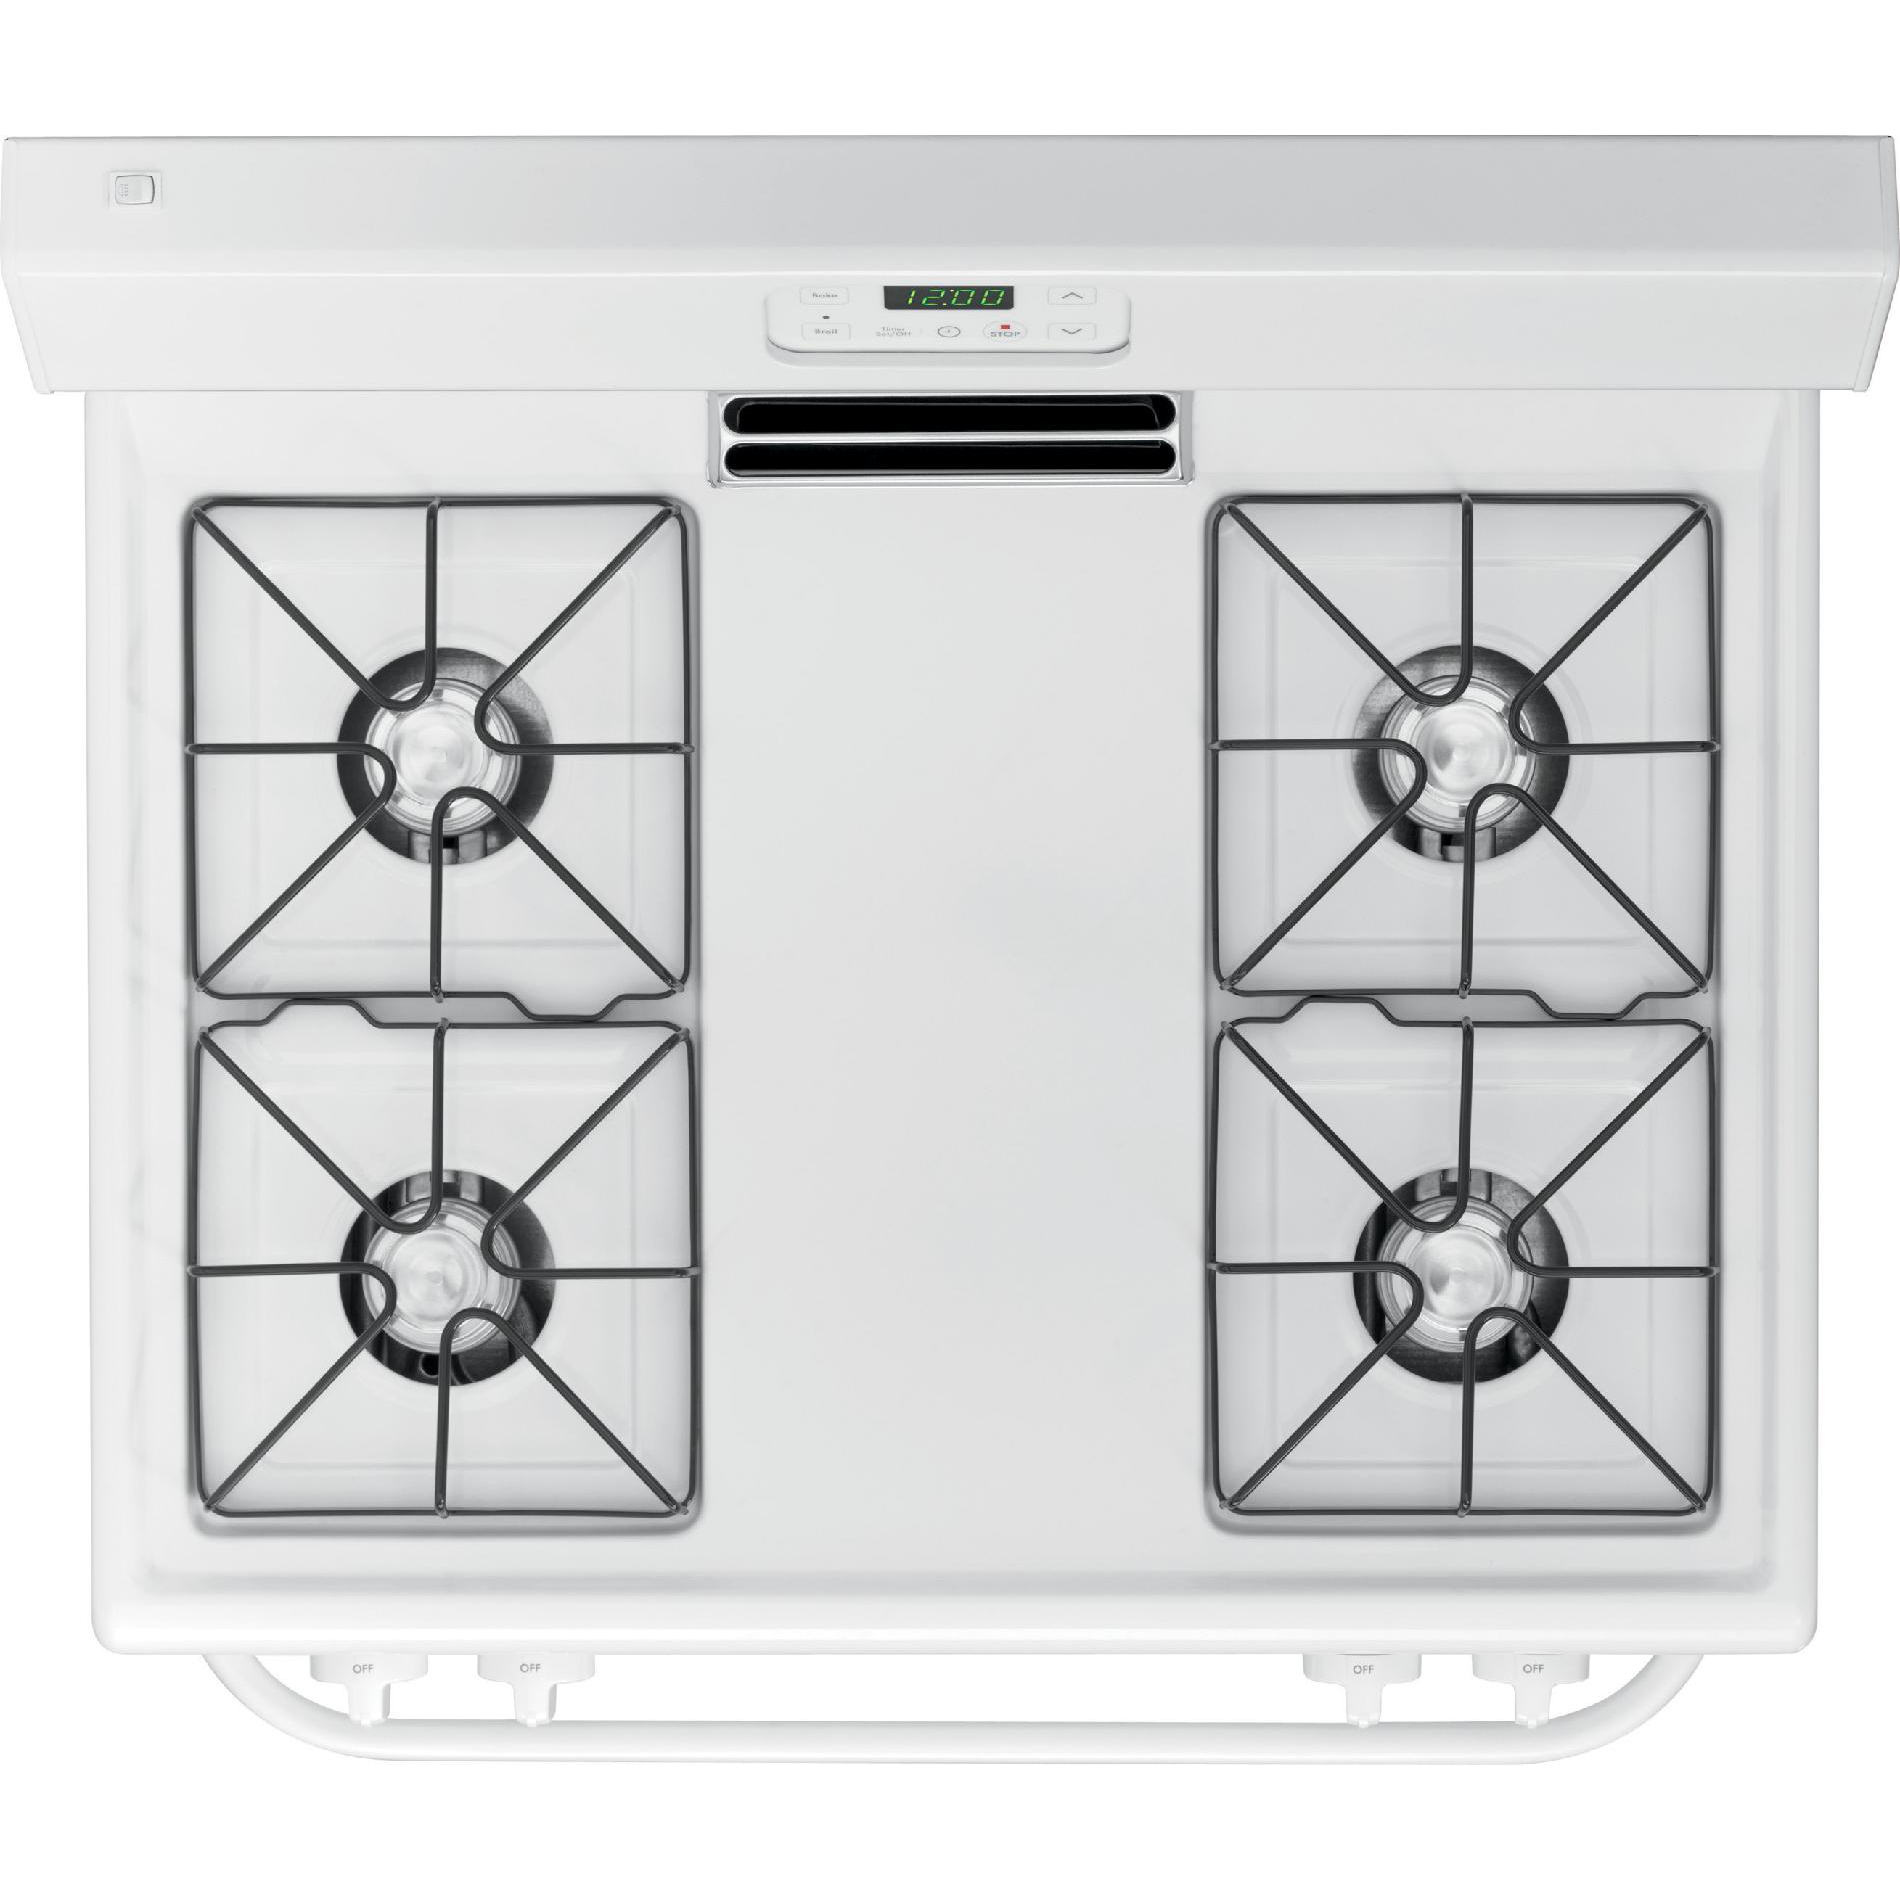 Kenmore 73032 4.2 cu. ft. Freestanding Gas Range w/ Broil & Serve™ Drawer - White